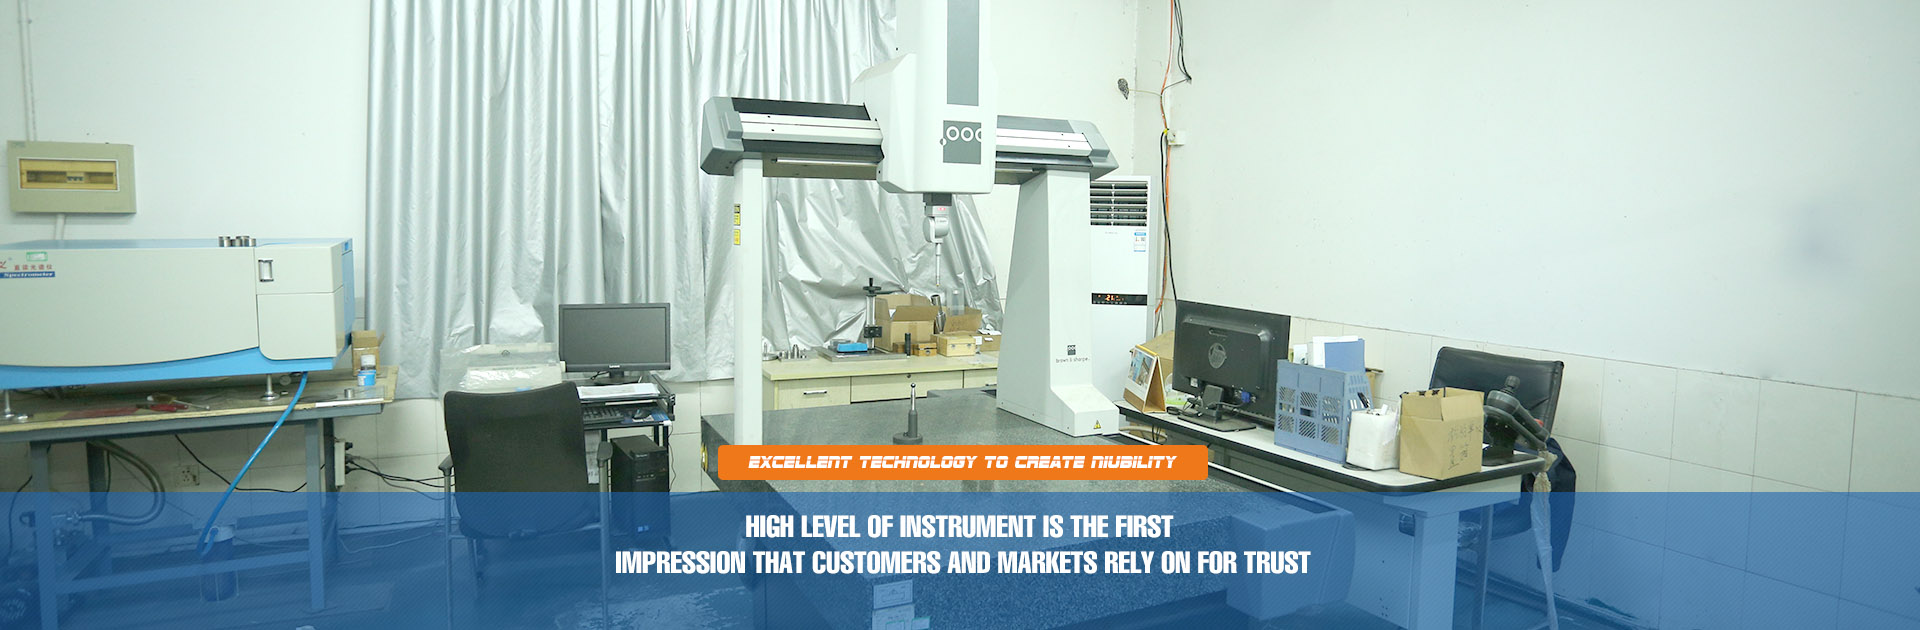 High level of INSTRUMENT is the first impression that customers and markets rely on for trust